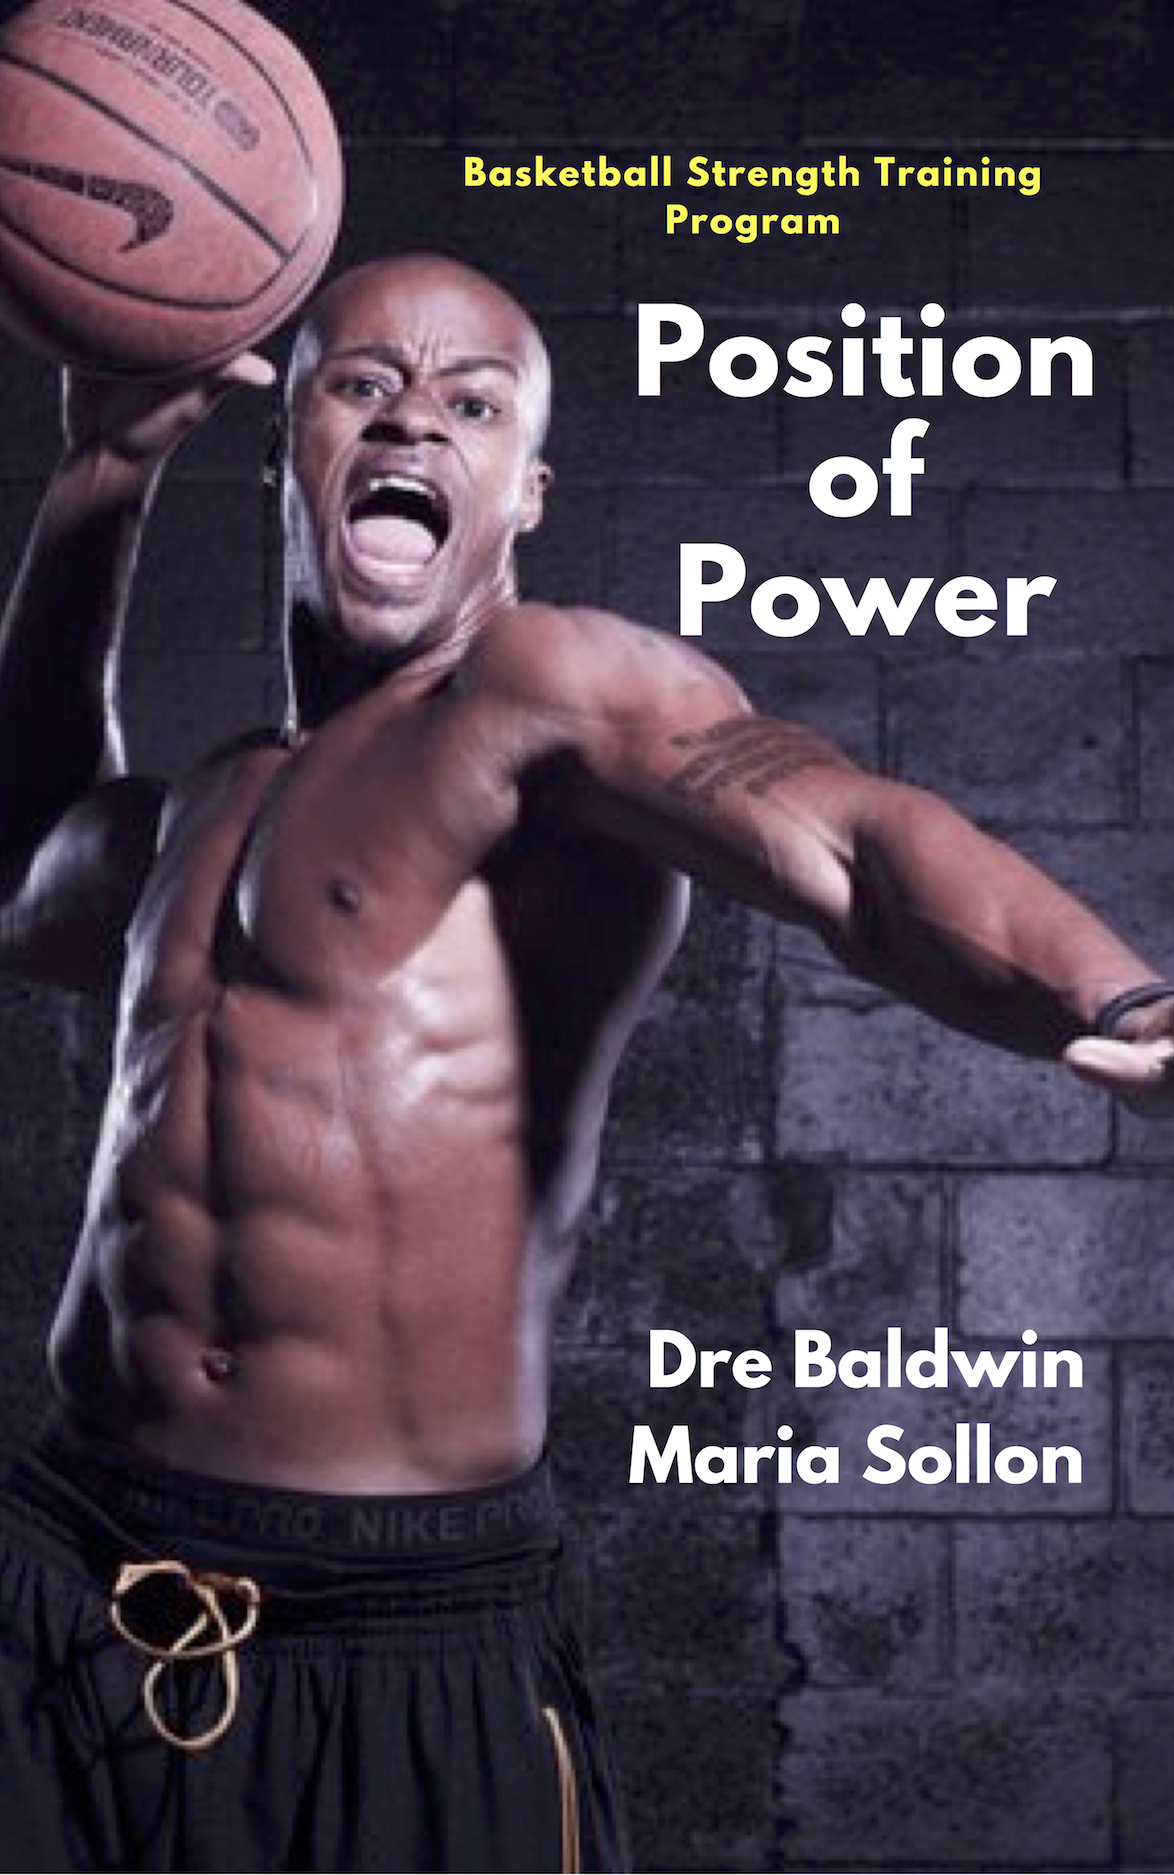 Position of Power by Dre Baldwin & Maria Sollon